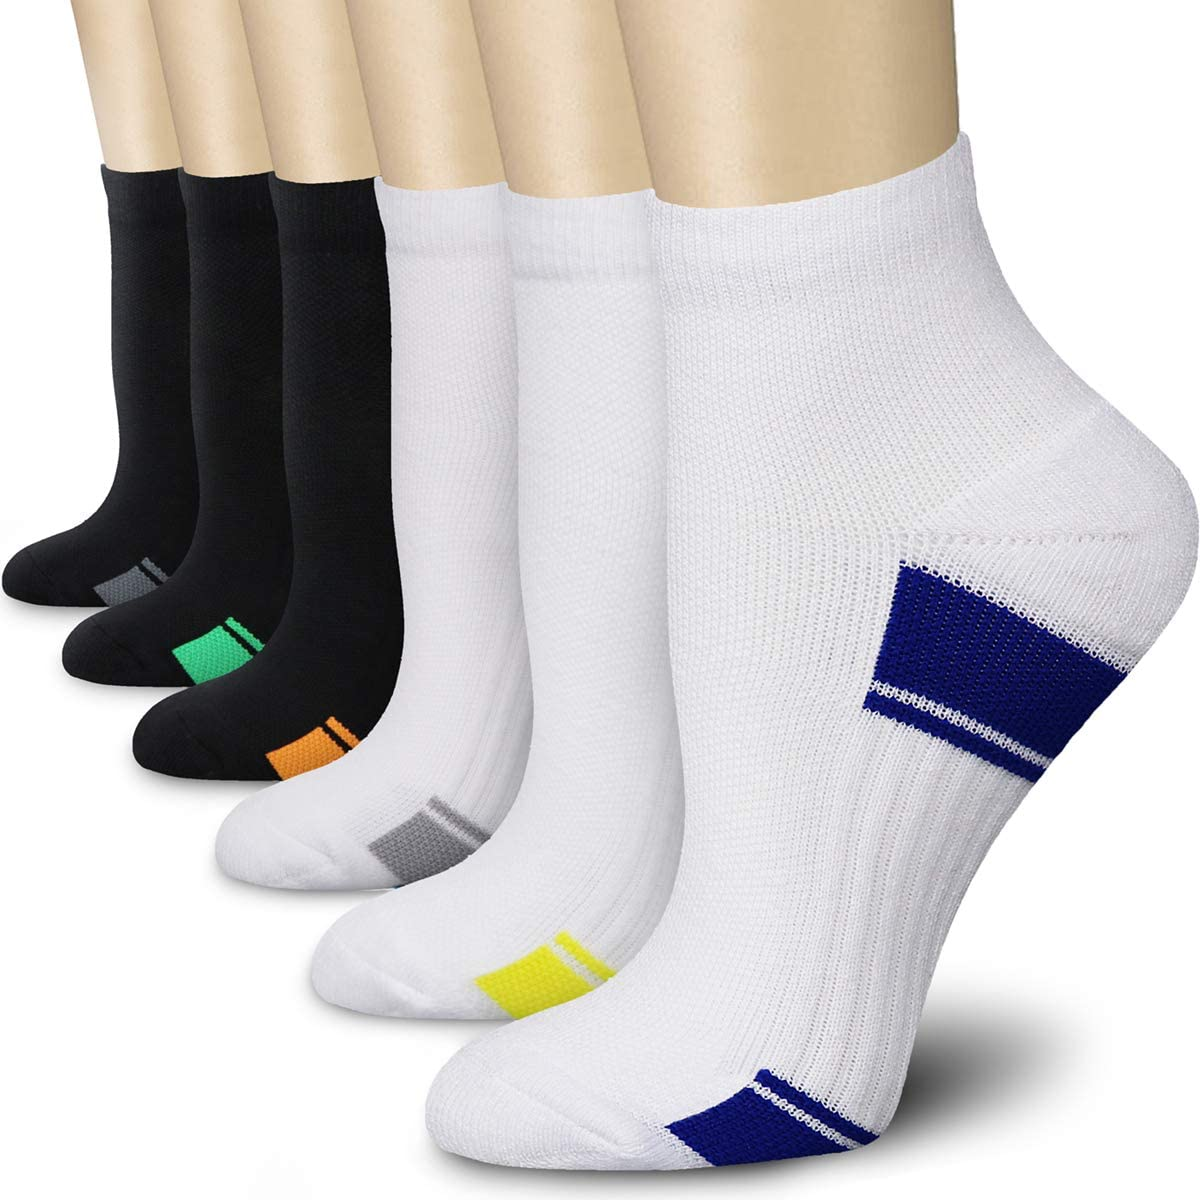 CHARMKING Compression Socks for Women Men Circulation 7 6 Free Shipping New P 3 New item